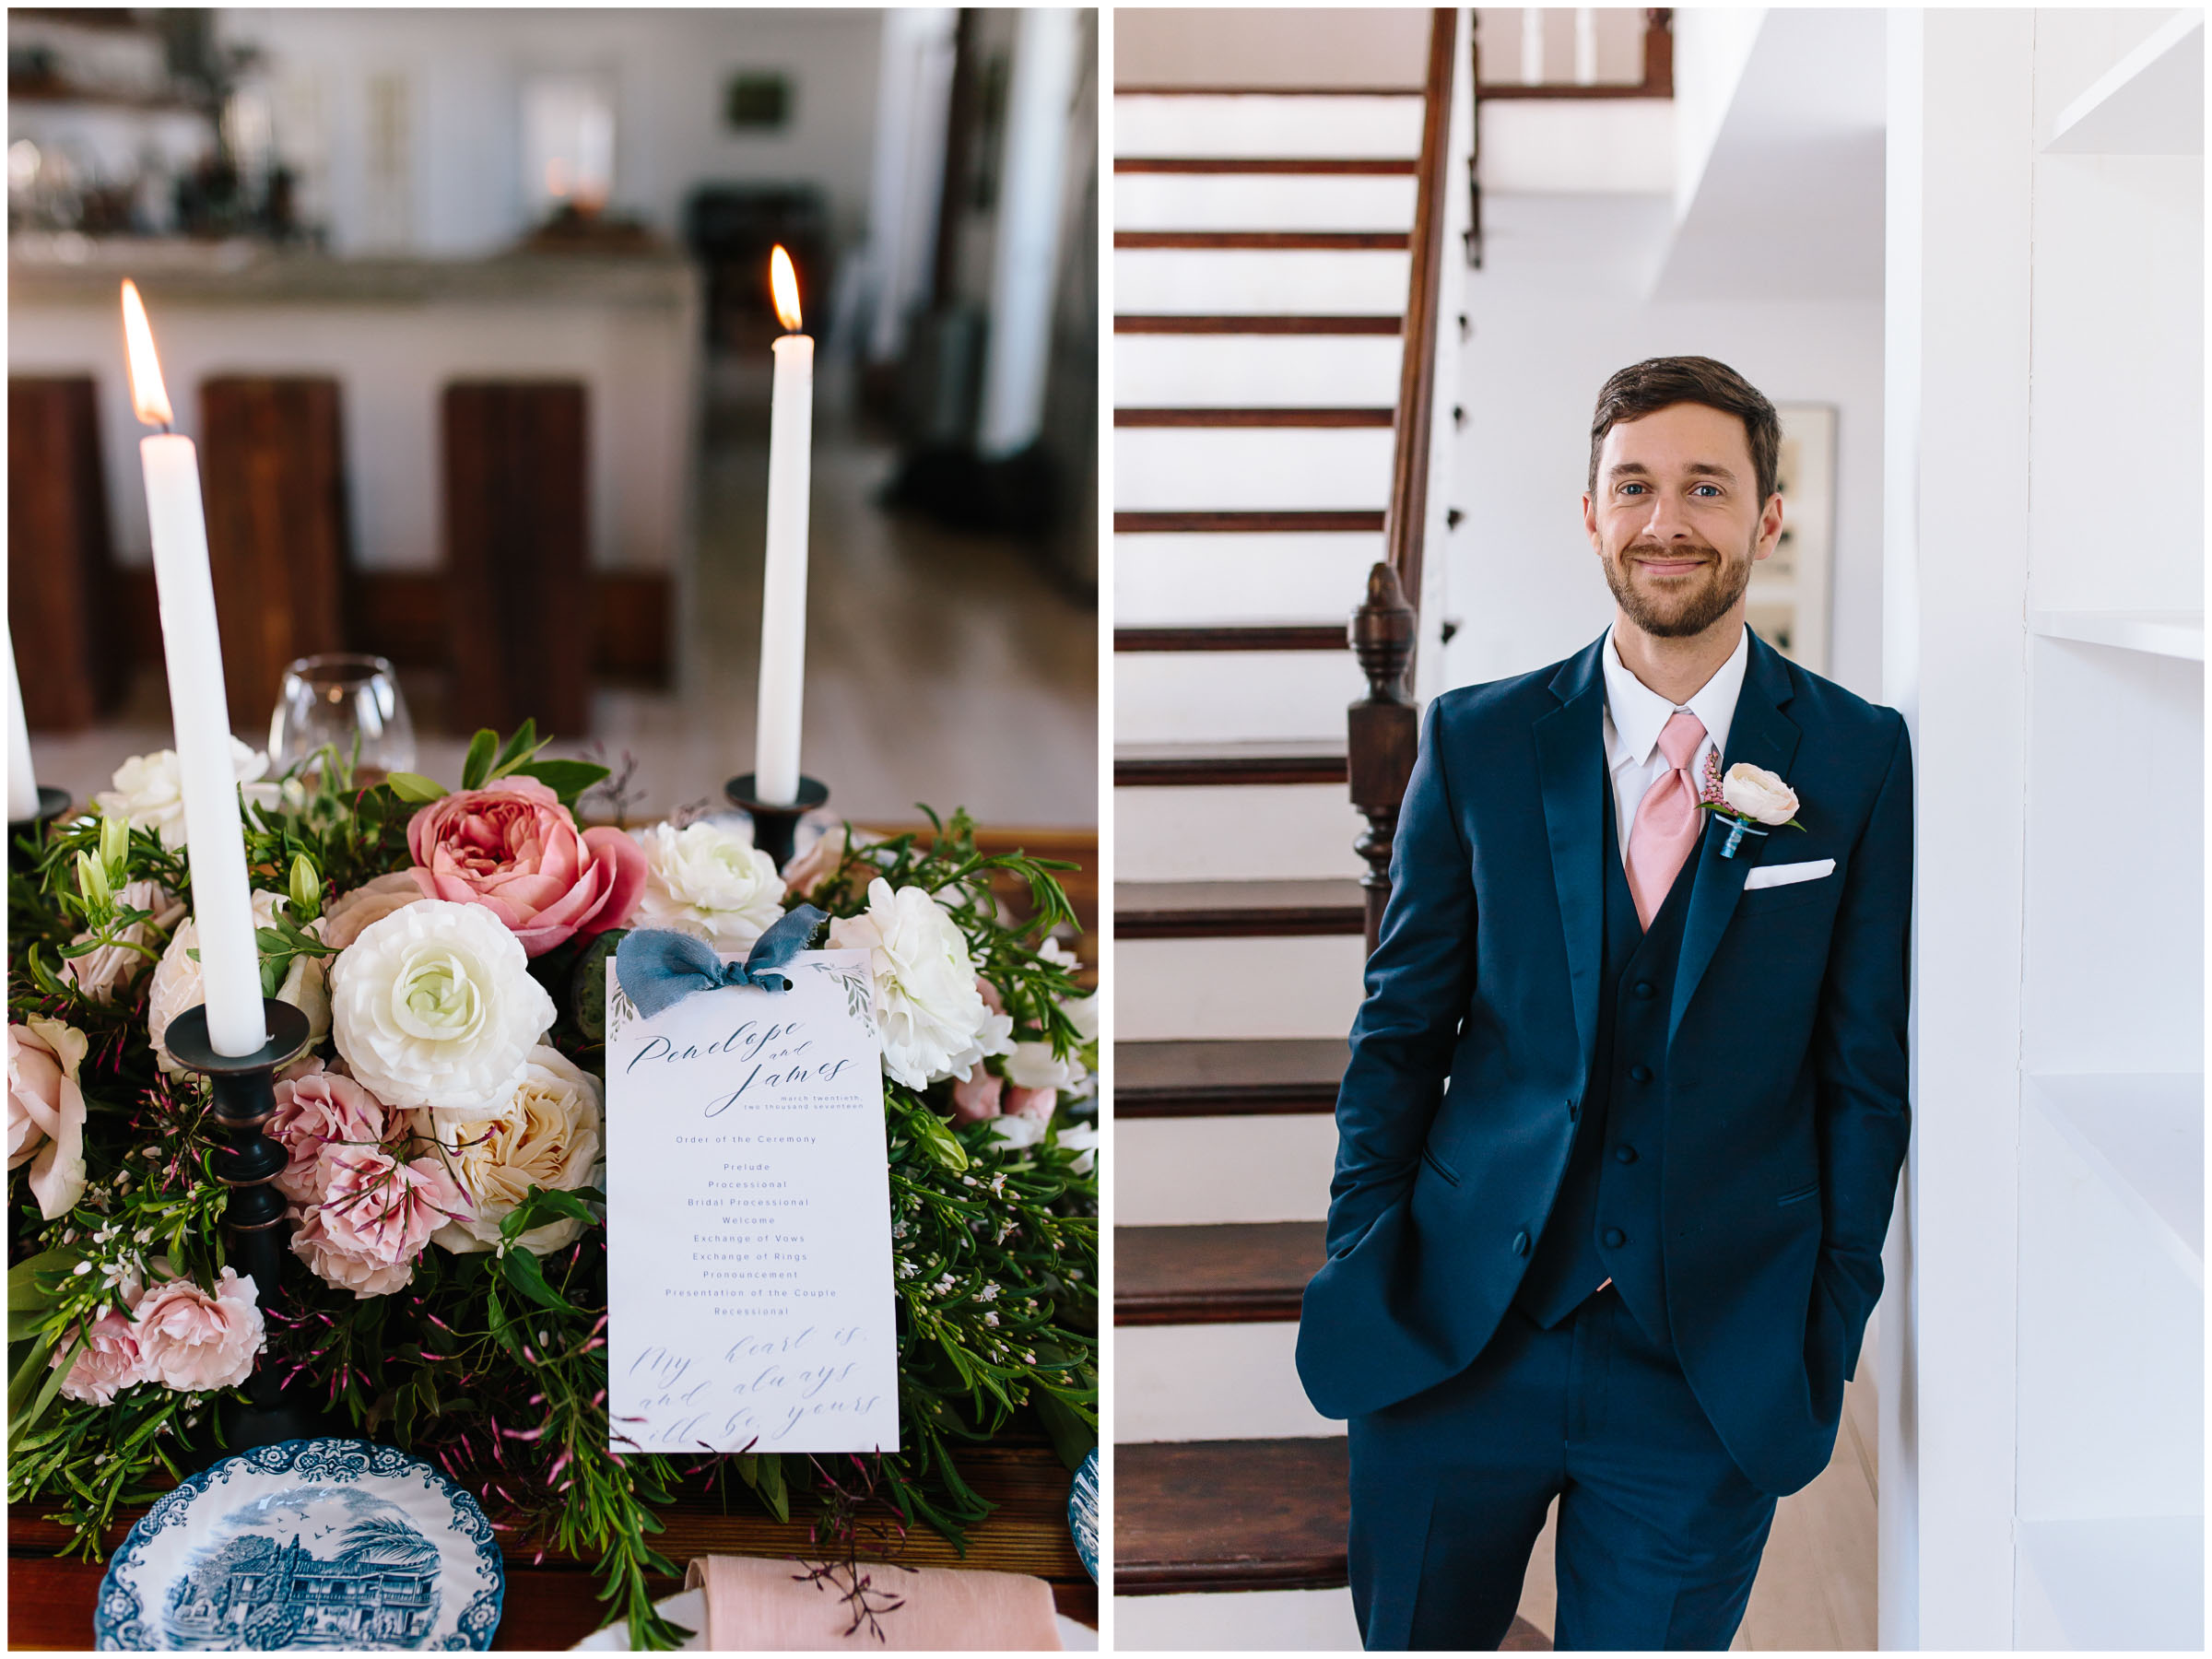 Intimate and romantic styled wedding photography in Lee, Massachusetts in the Berkshires - groom and tablescape